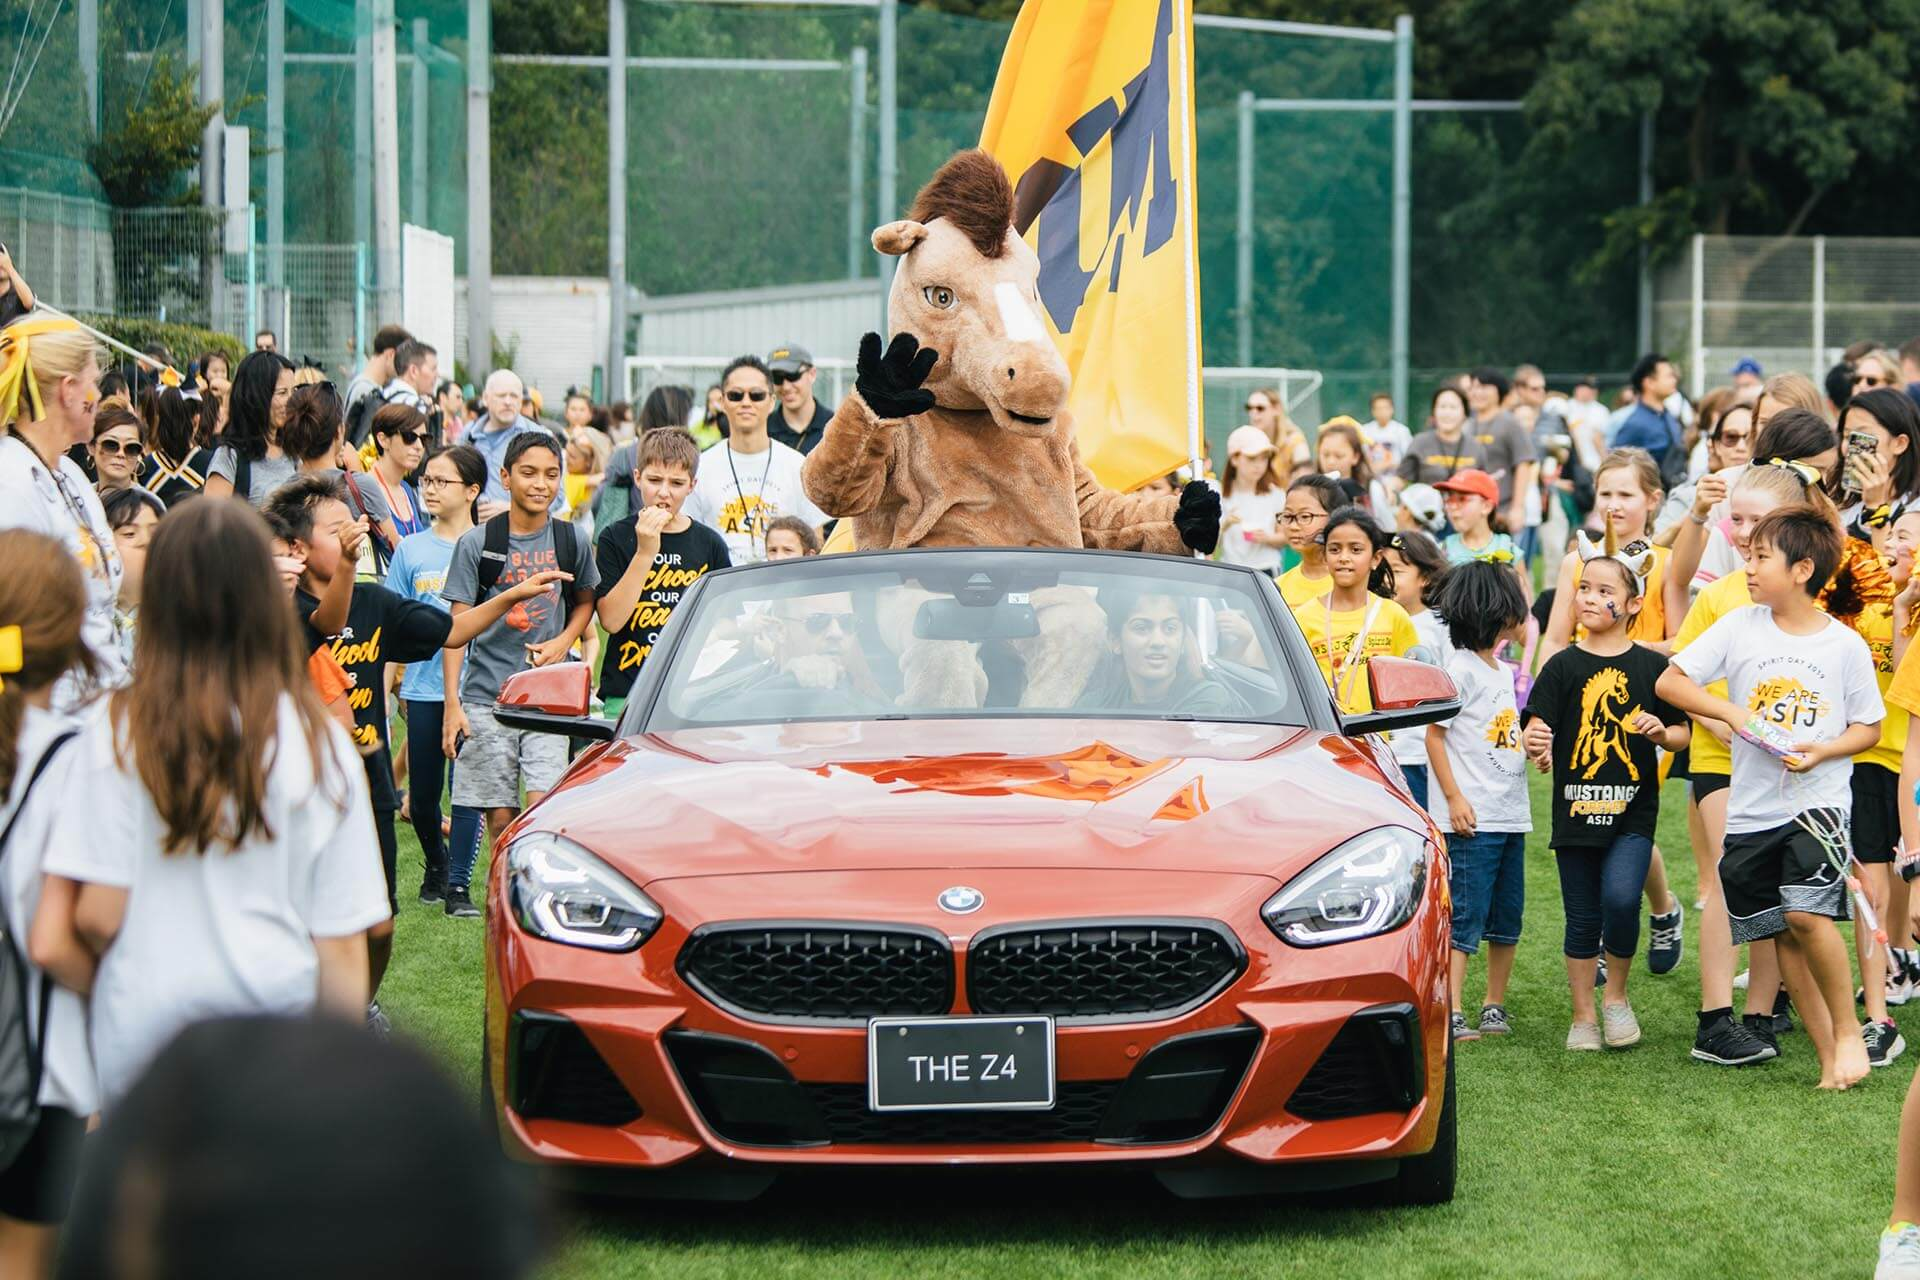 The Mustang Mascot Rides a BMW on Spirit Day